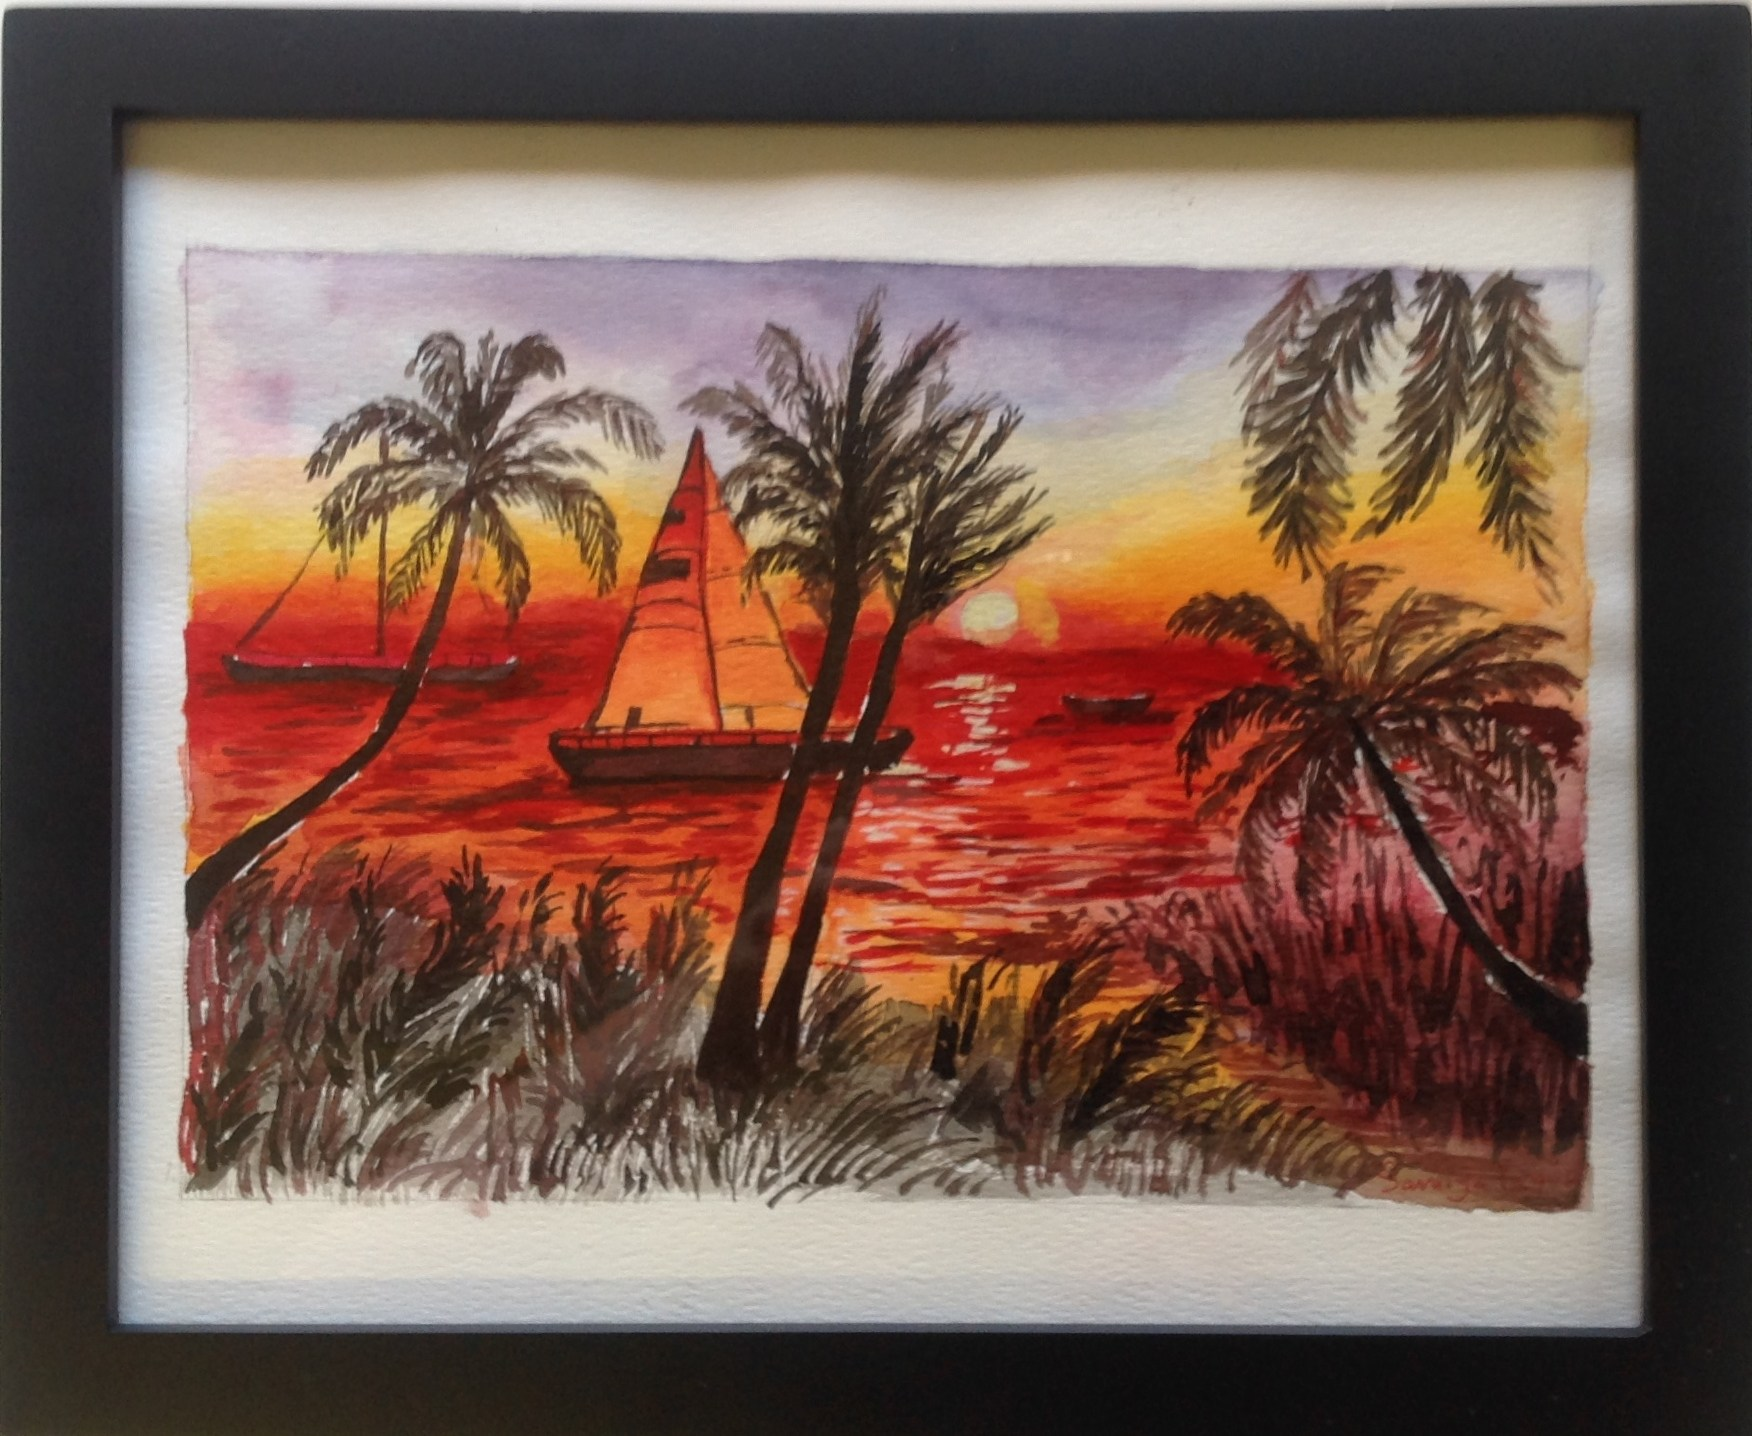 Watercolor painting of beach and palm trees